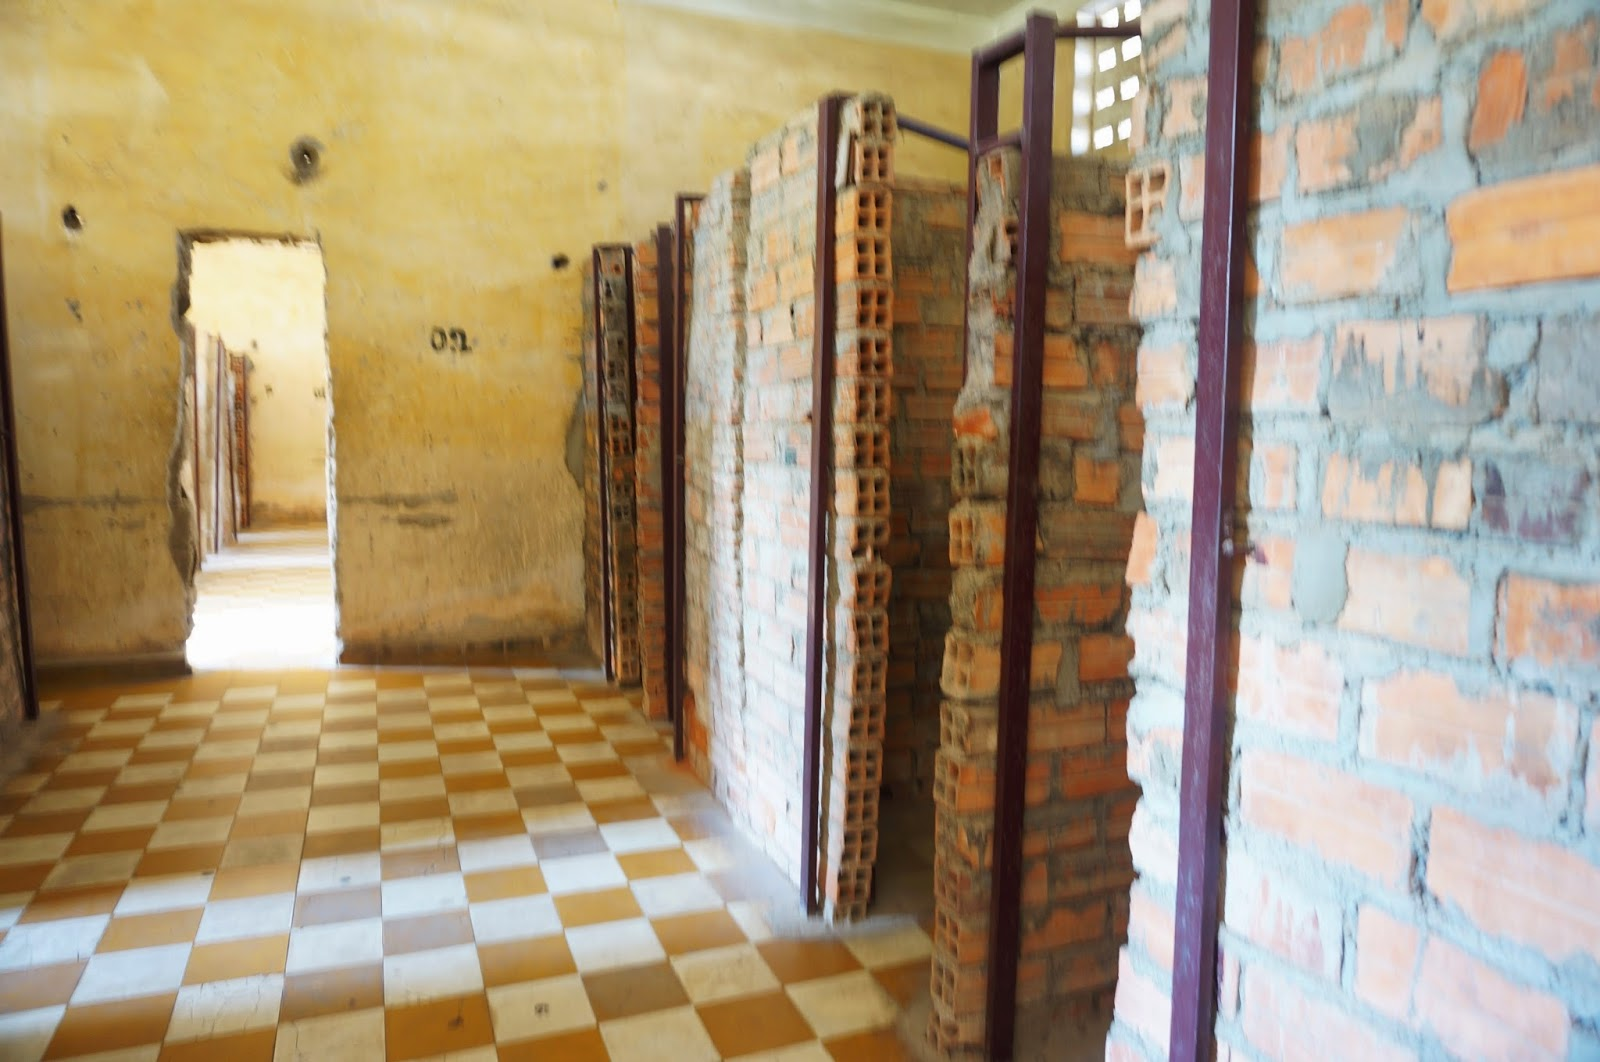 My Memory Keeper: Cambodia Day 4 : S21 Tuol Sleng Genocide